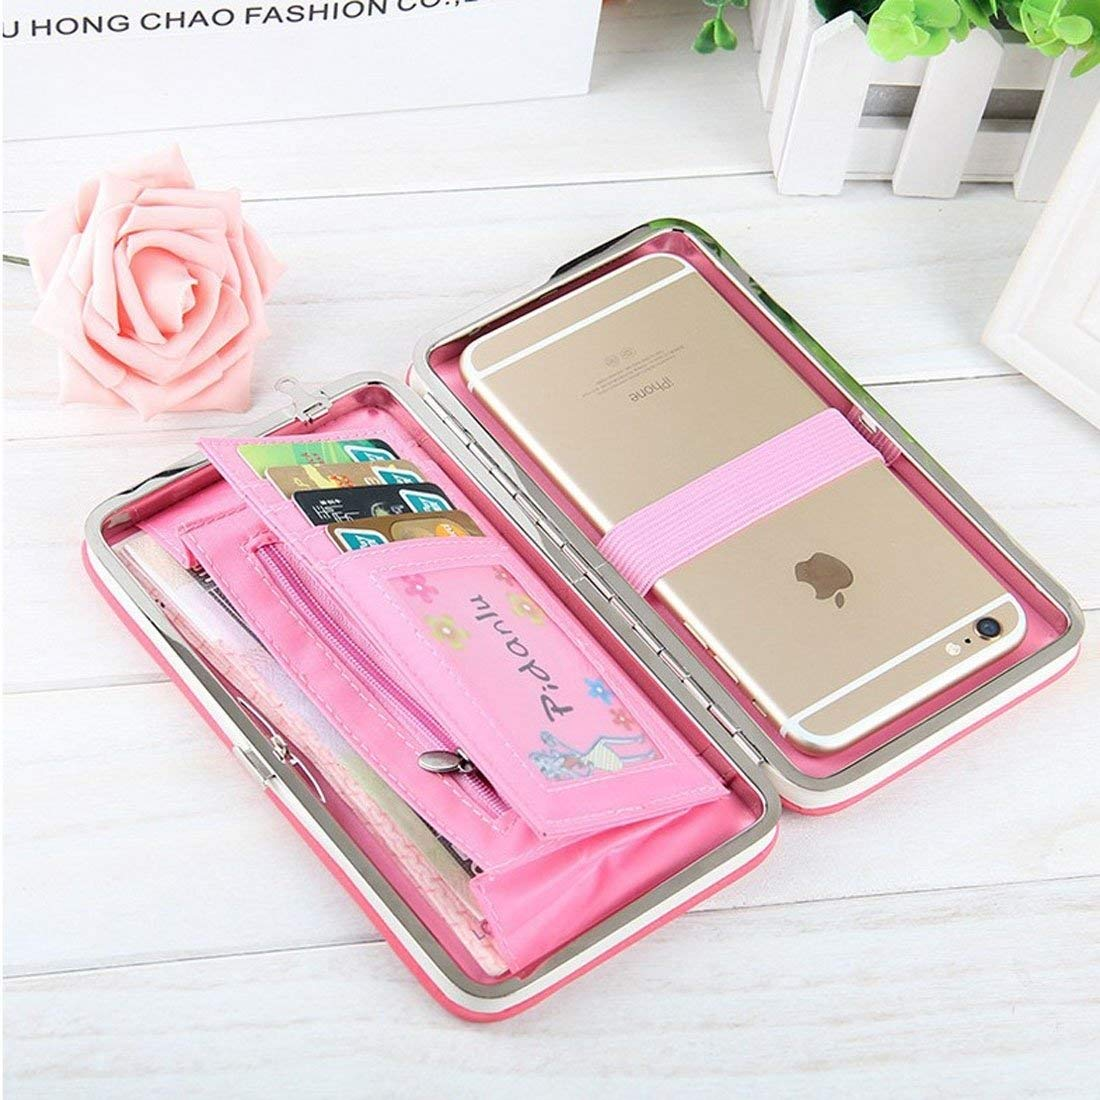 Multi-function High Heels Pattern Wallet Leather Case For Below 5.5 inch Smartphones with Card Slots & Photo Frame J.S.U-CC (Color : Pink light)